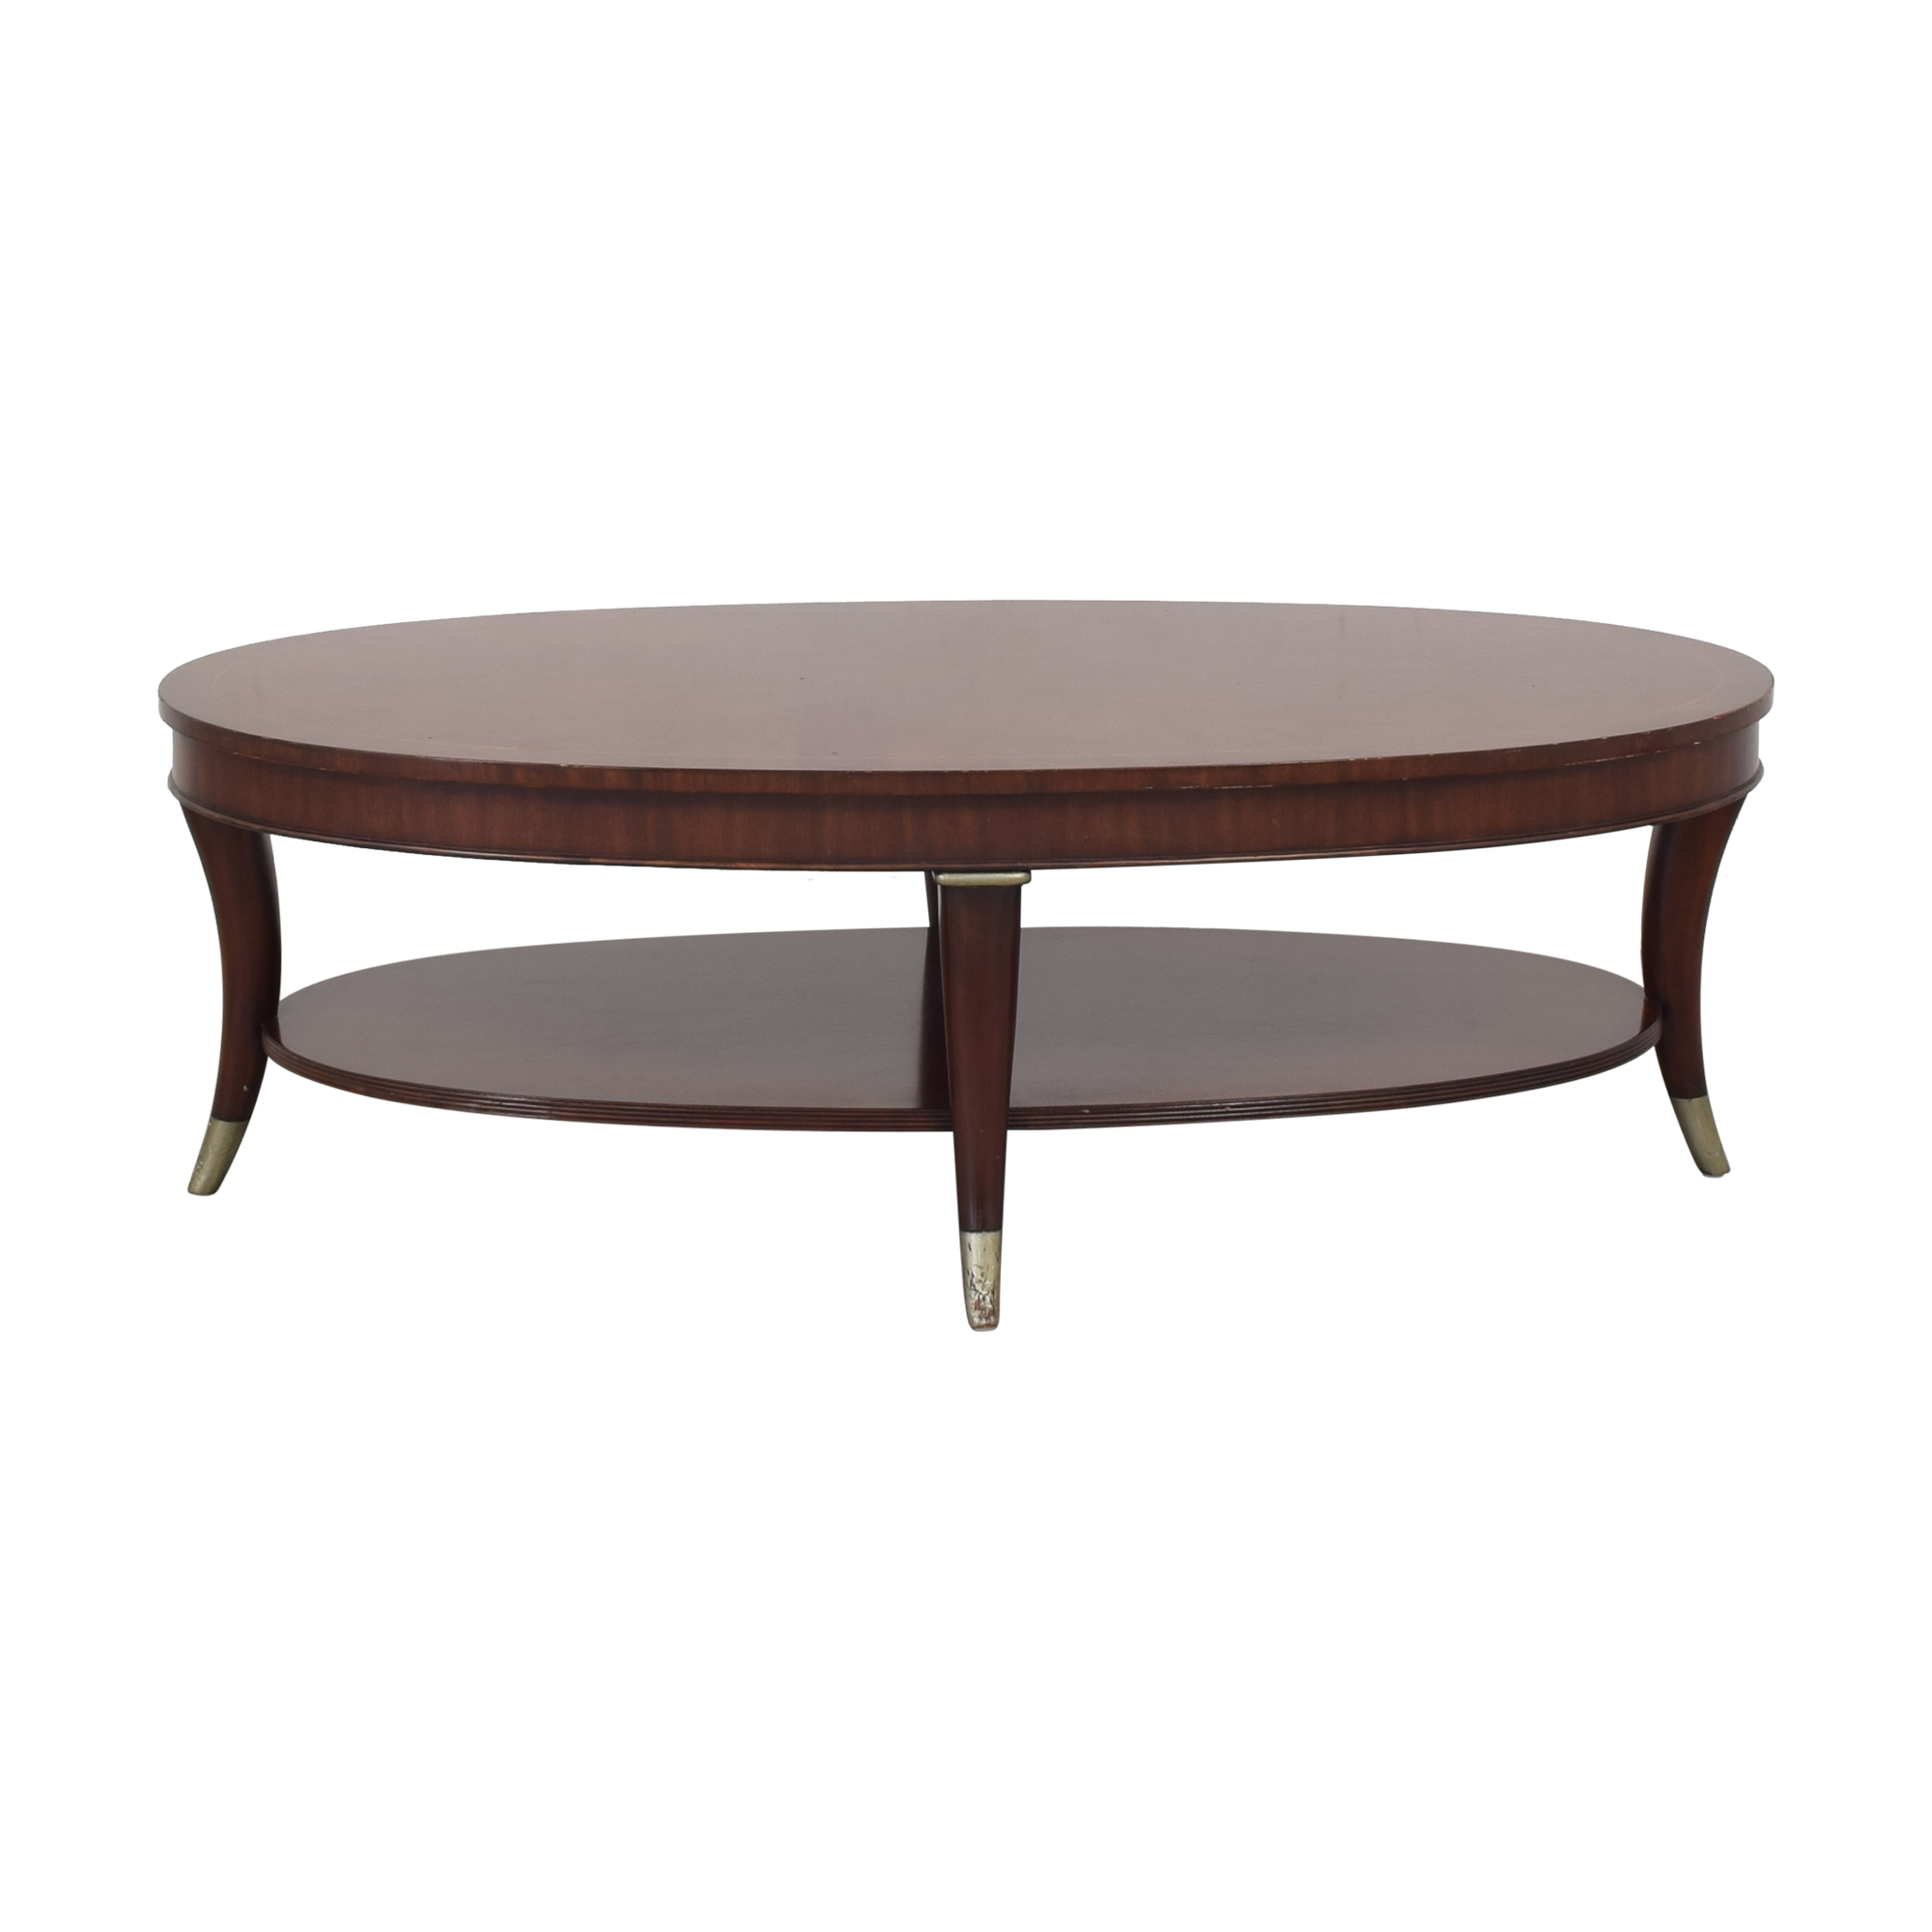 Thomasville Thomasville Oval Coffee Table